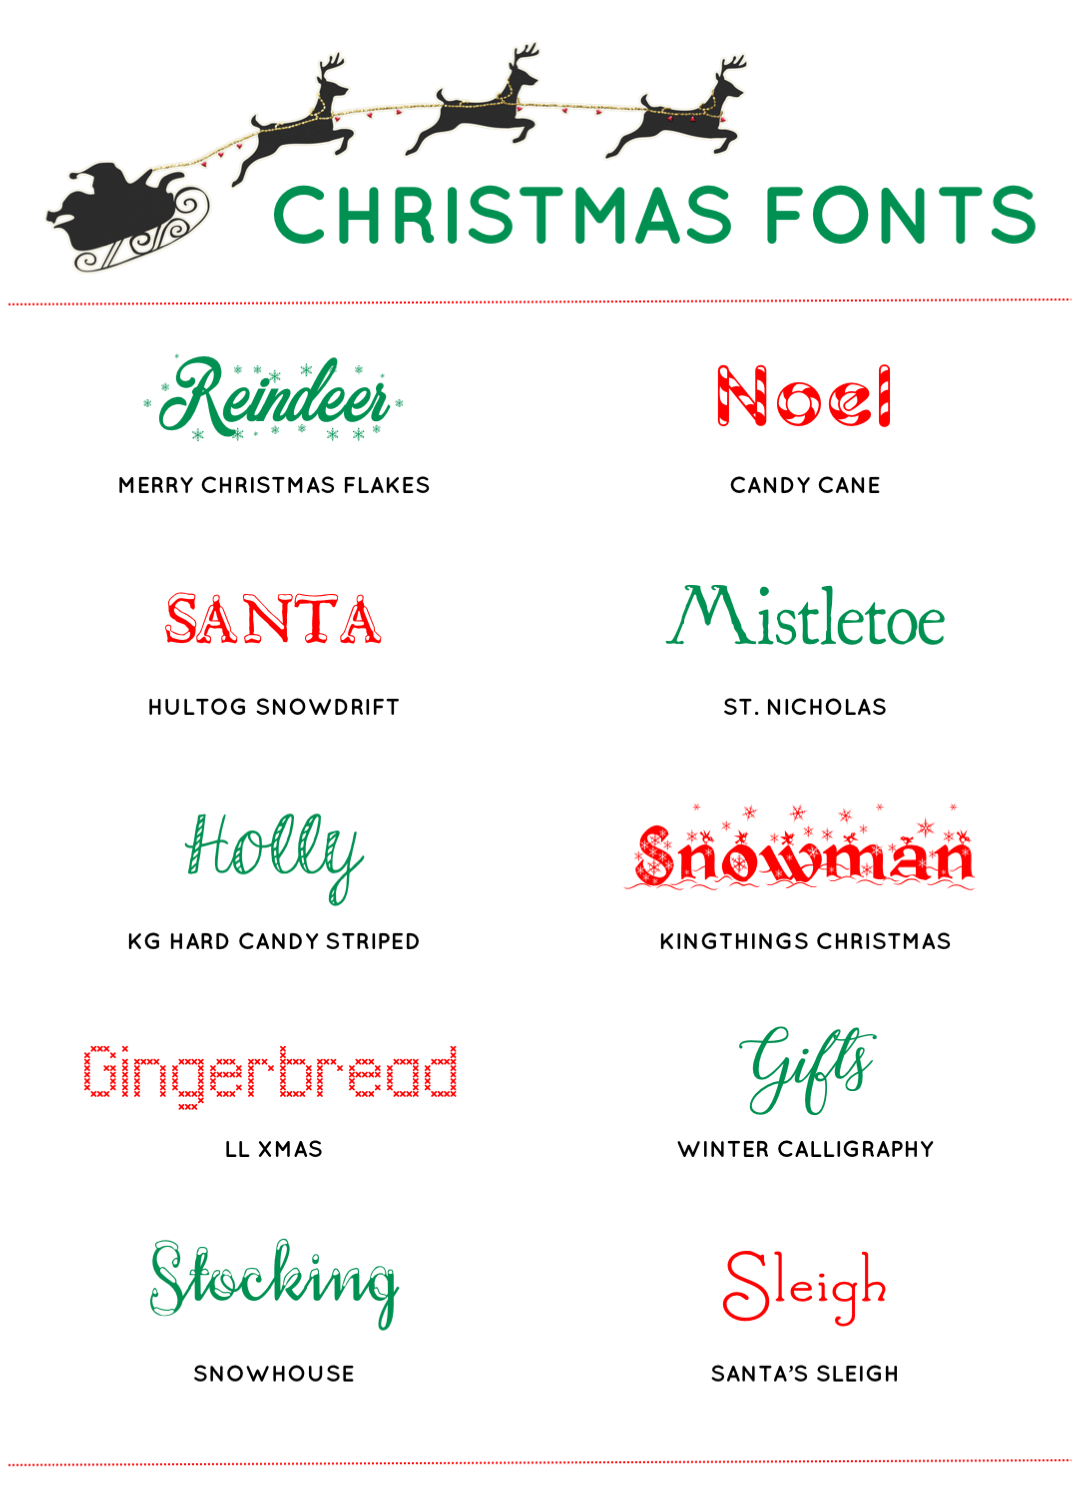 download the fonts here